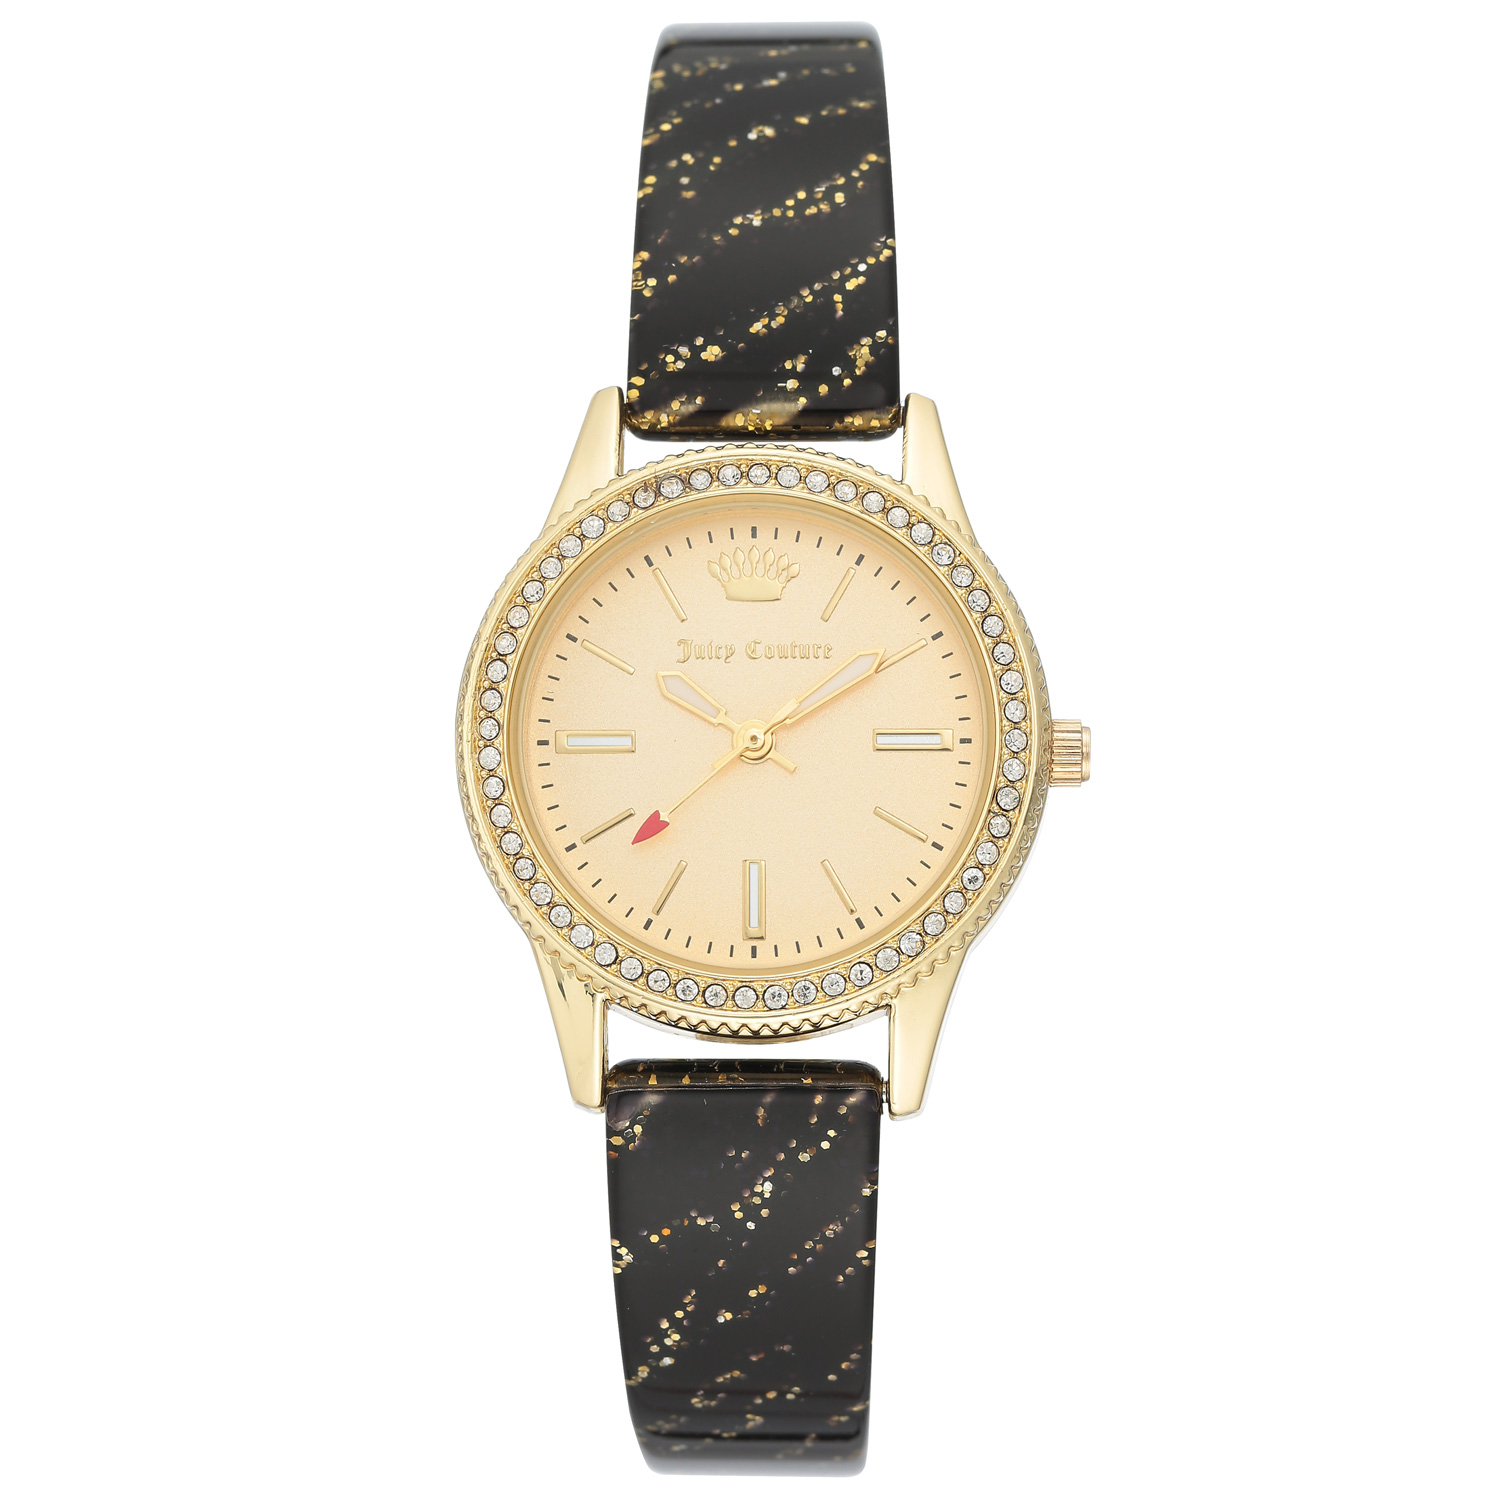 Juicy Couture Watch JC/1114BKGD Gold